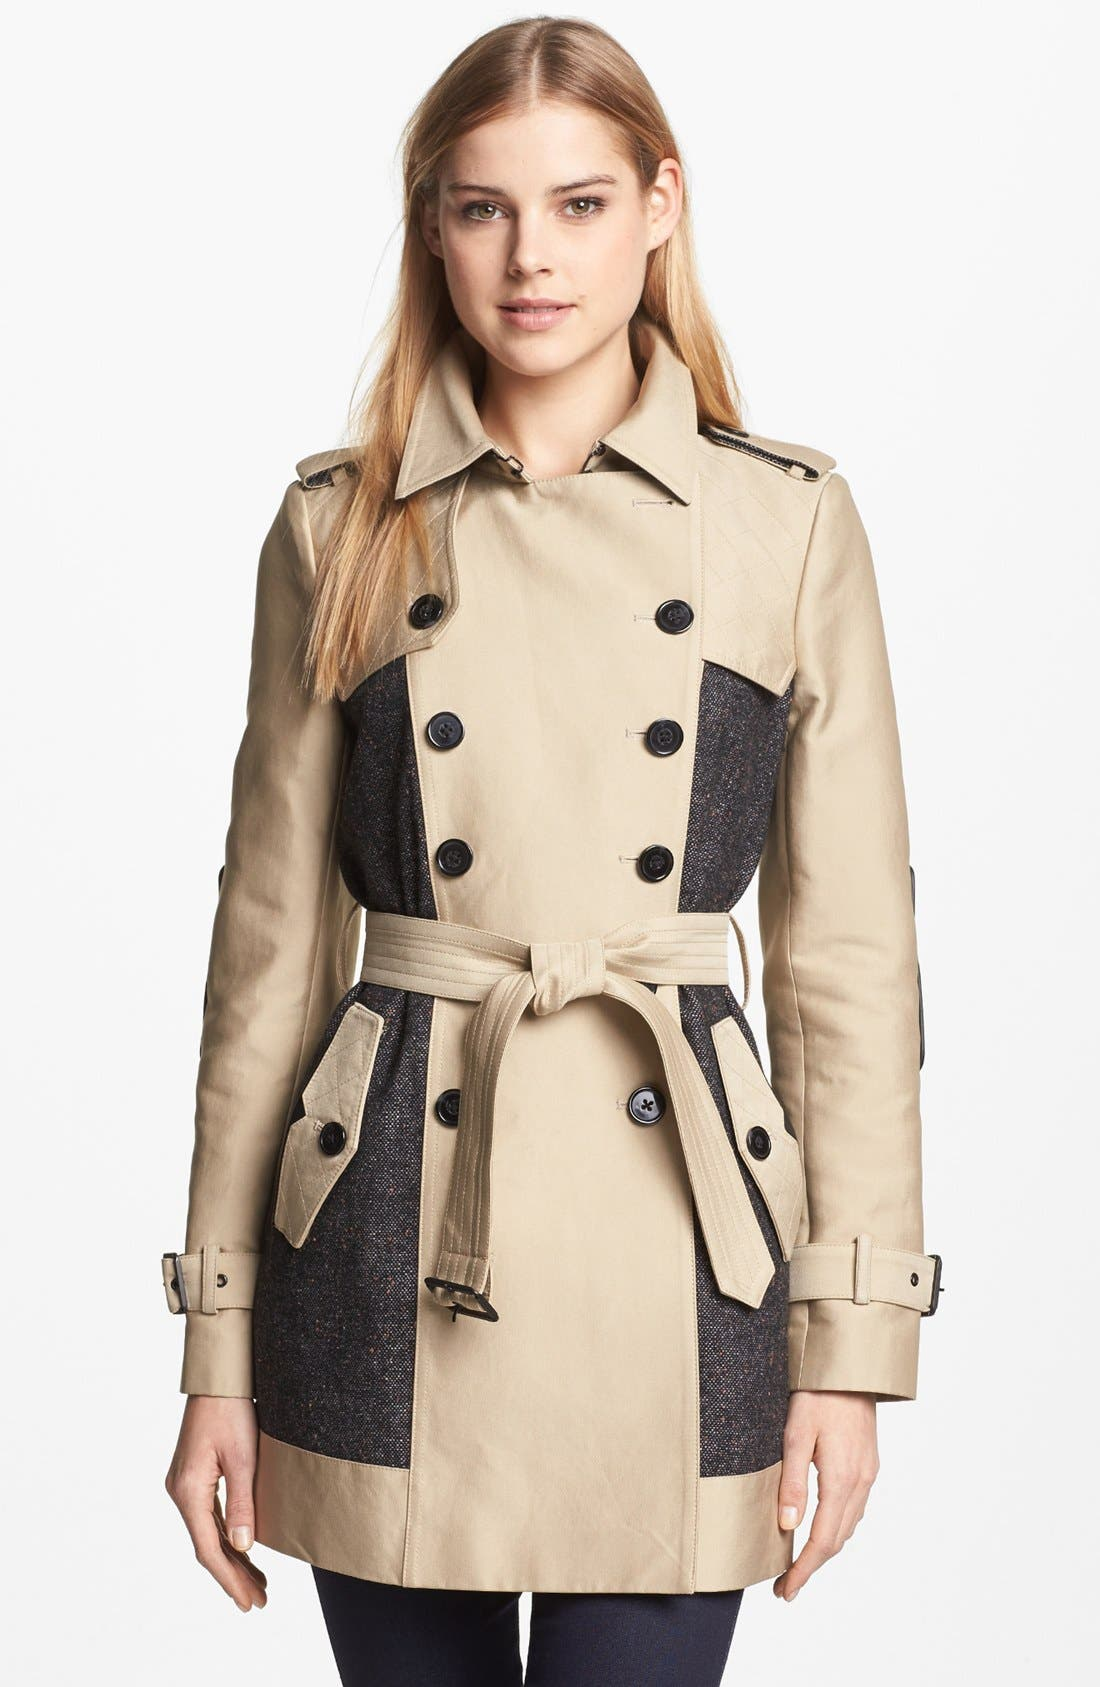 Alternate Image 1 Selected - Sam Edelman Double Breasted Wool Inset Trench Coat (Online Only)